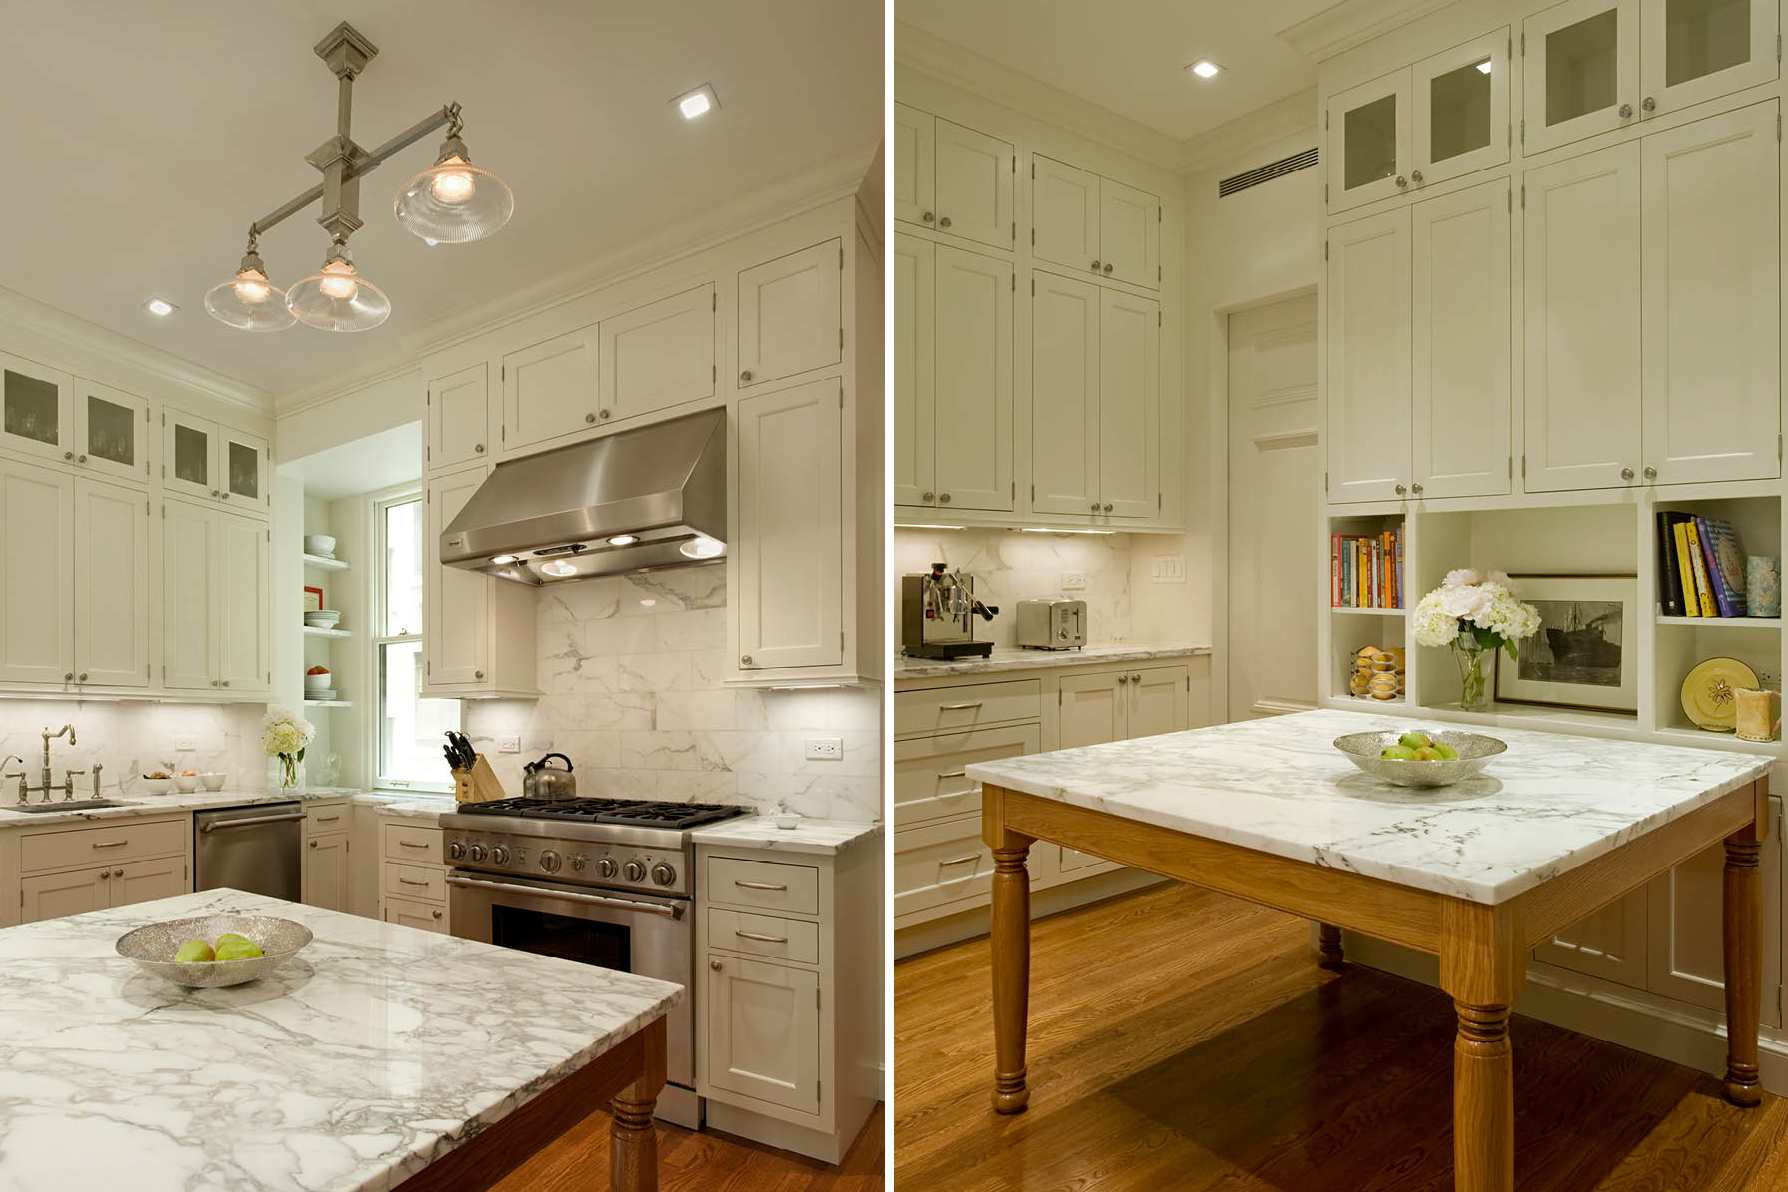 Marble kitchen countertop and matching table